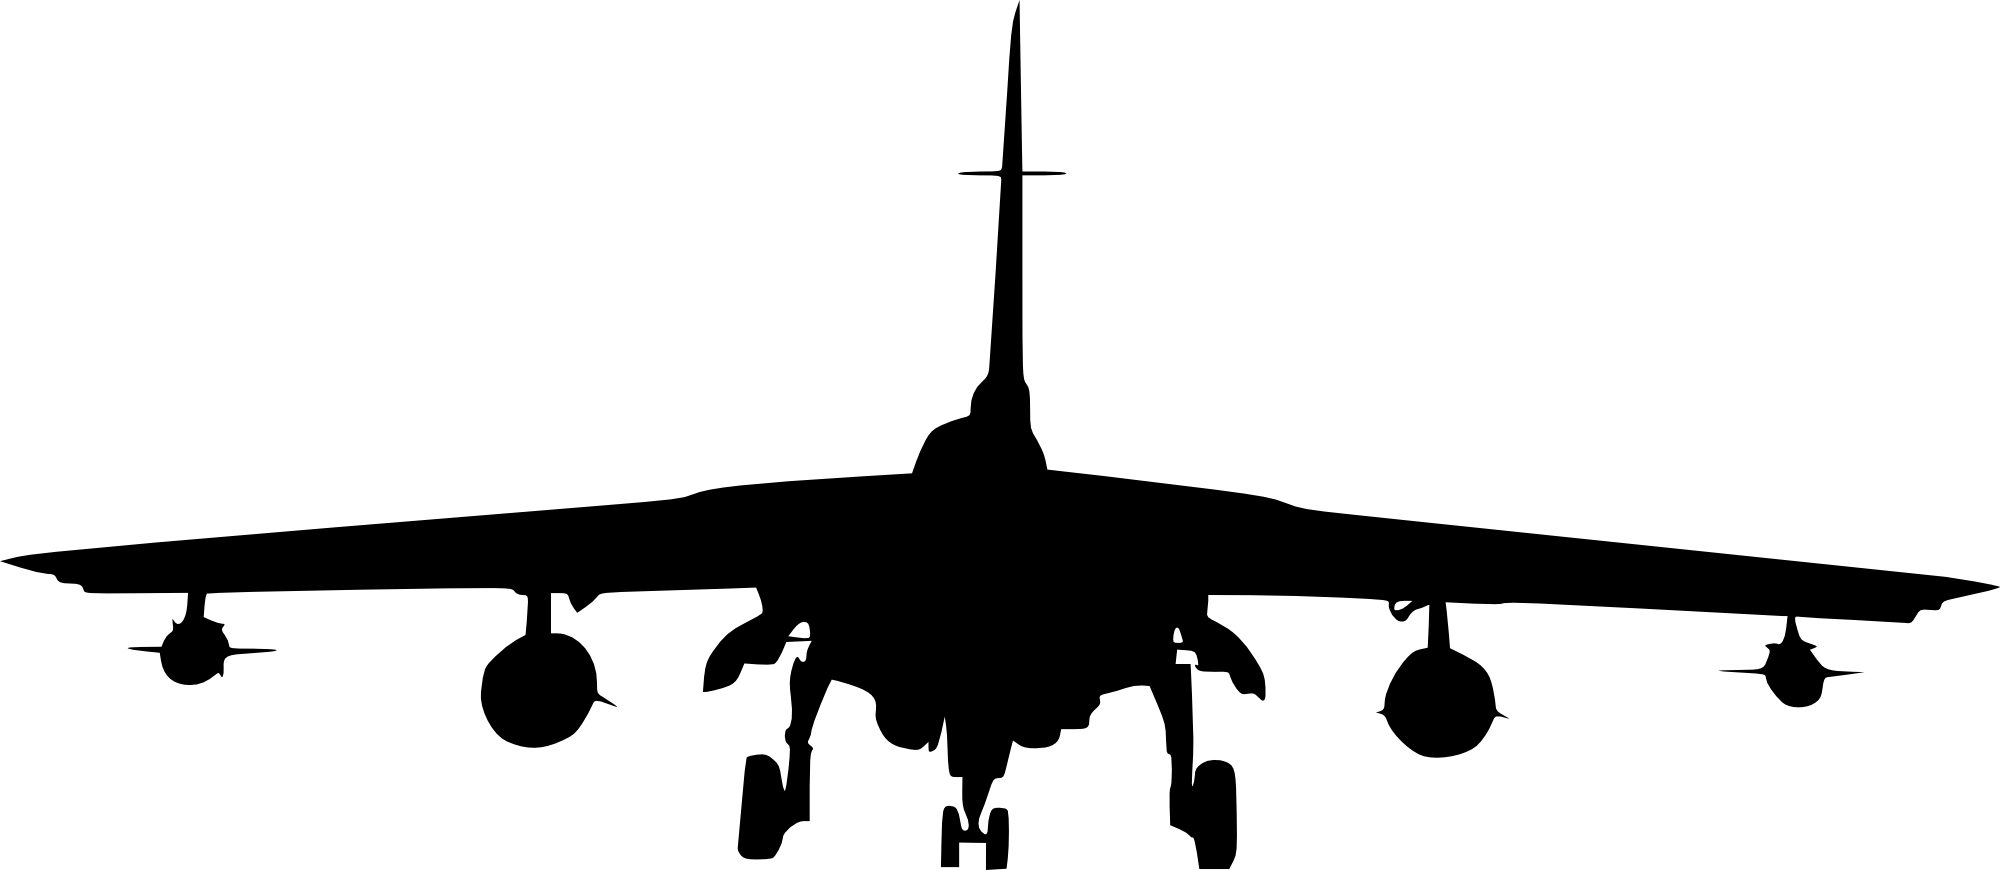 5 Fighter Plane Front View Silhouette Transparent